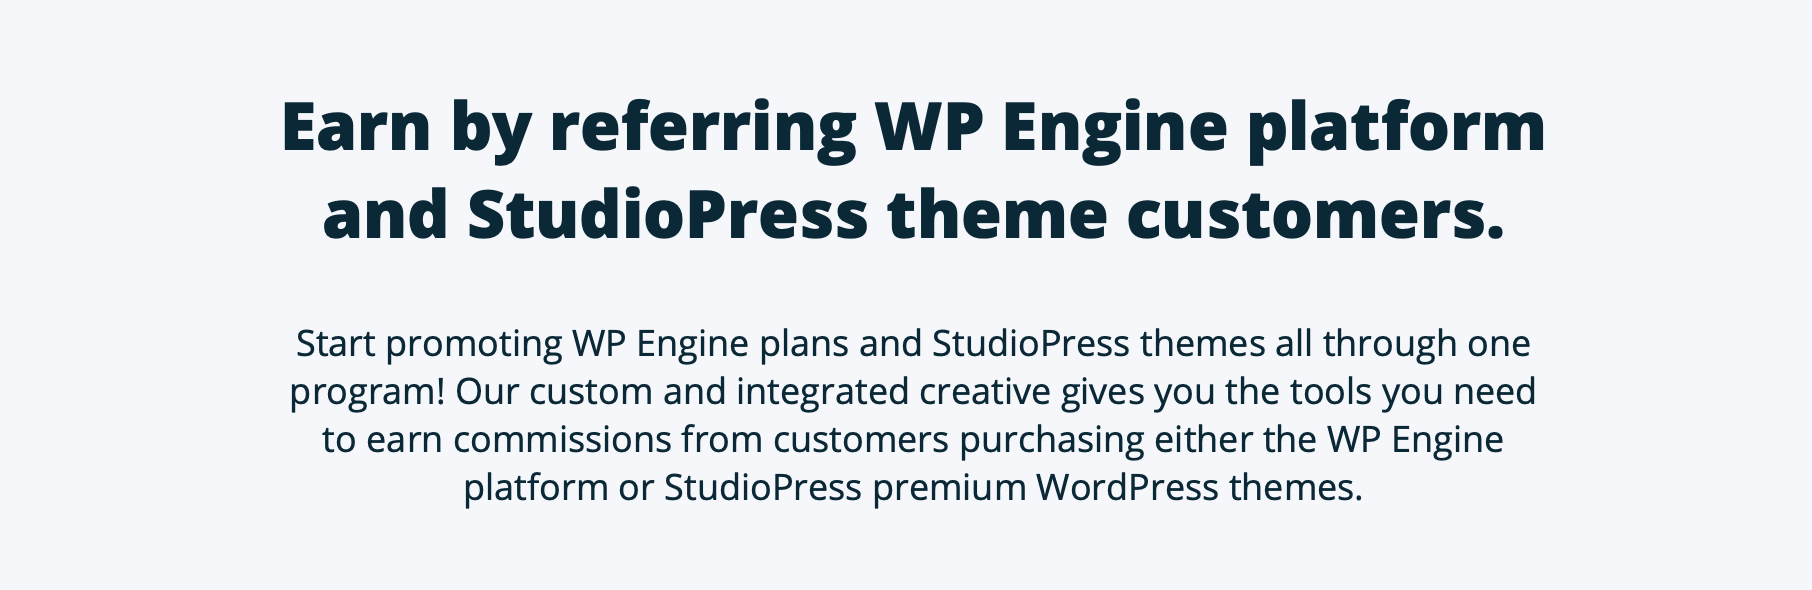 studiopress-affiliate-now-under-wpengine-affiliate-program